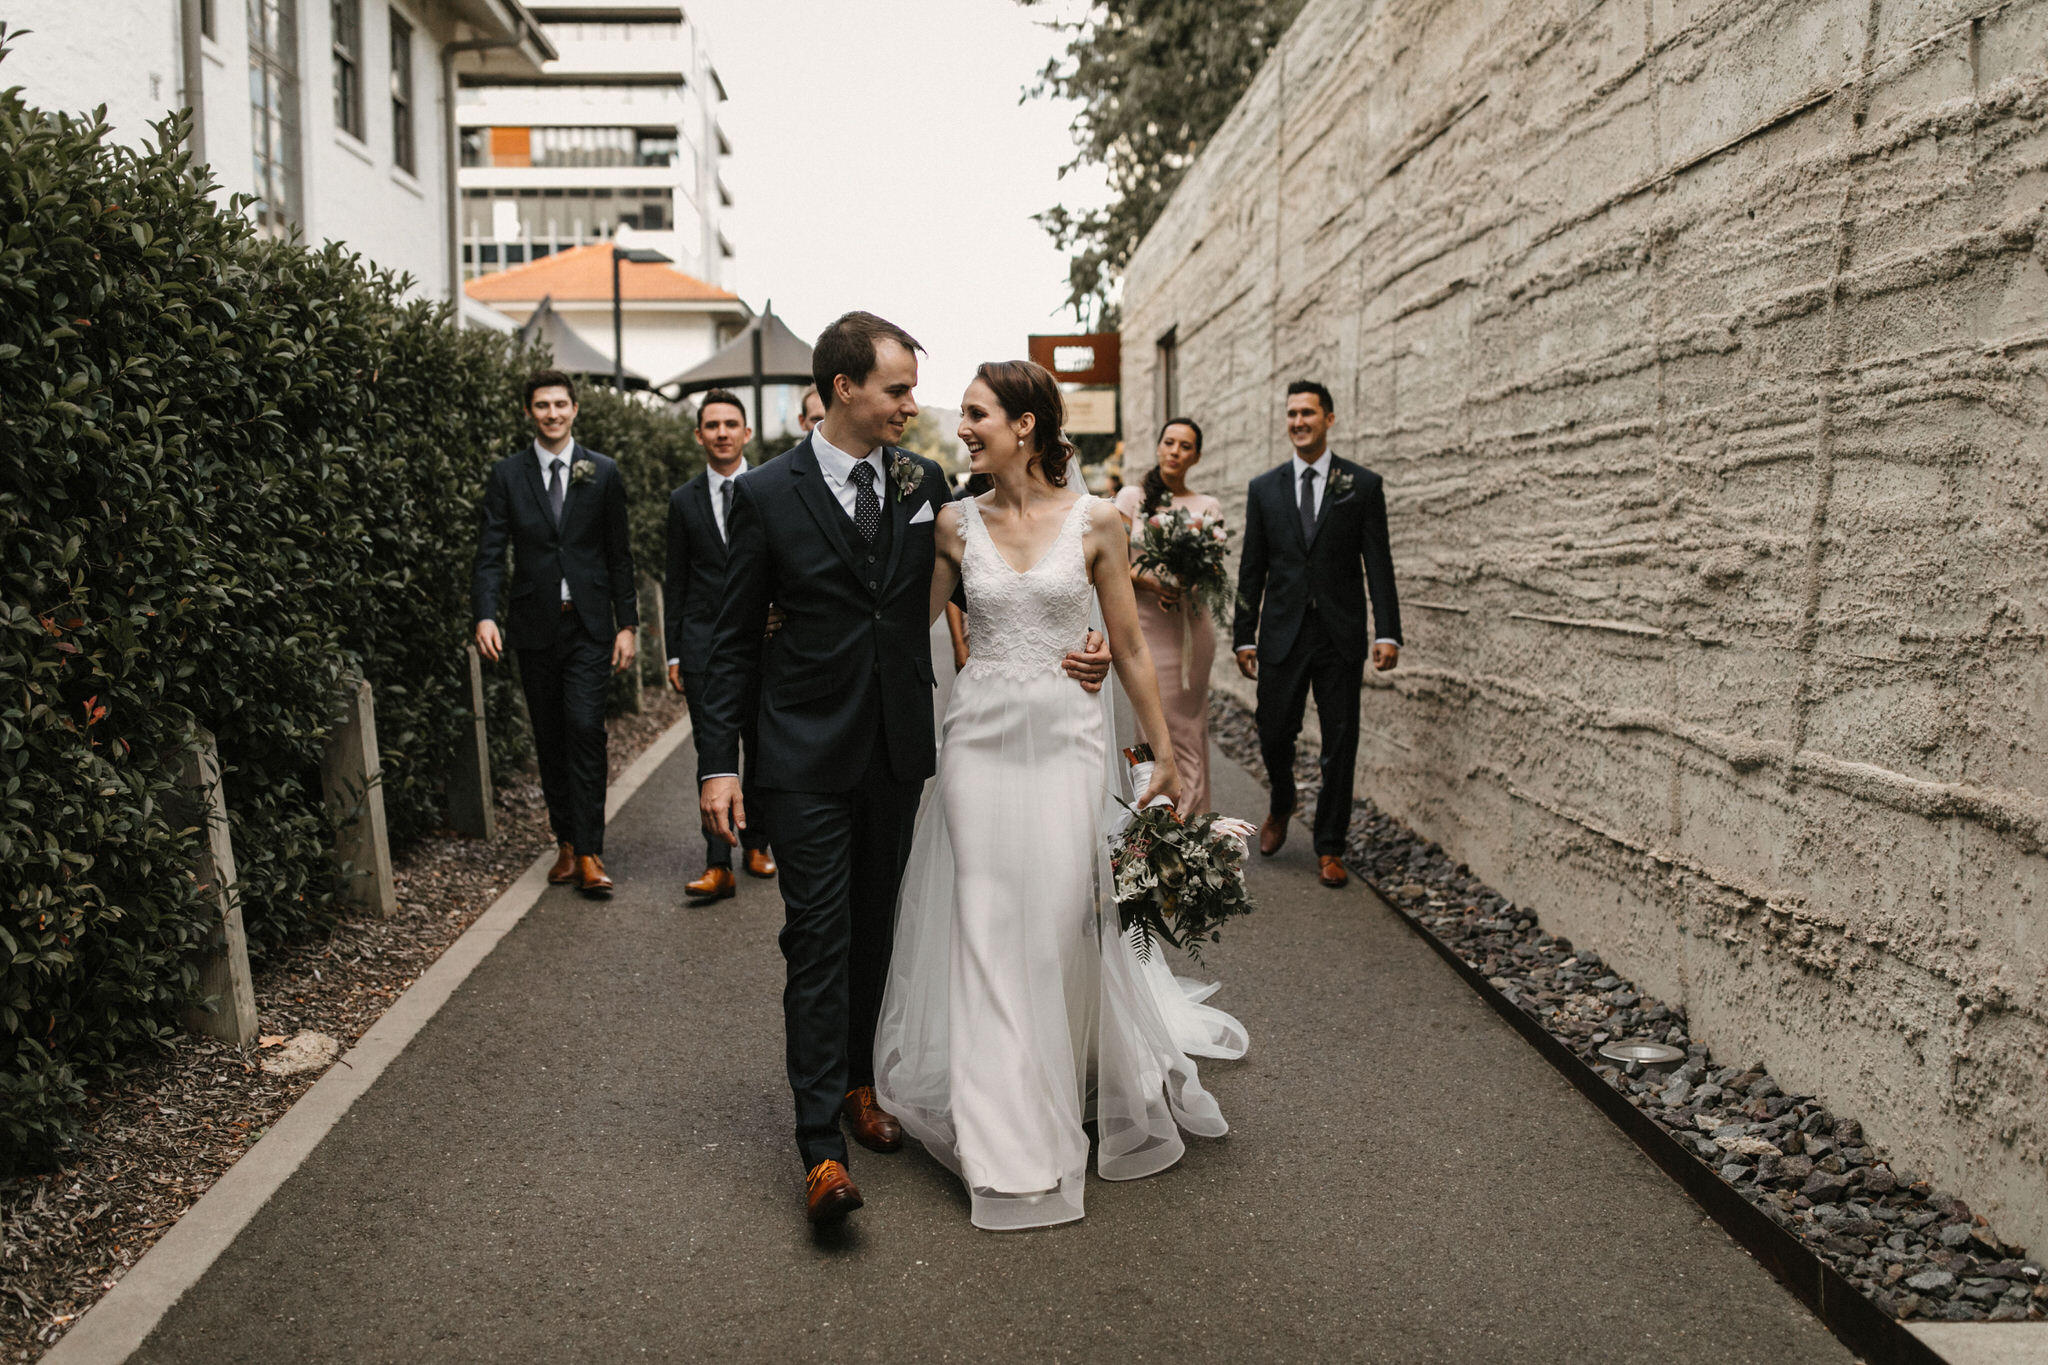 New Acton, Parlour Wedding, Nishi Gallery, Hotel hotel, canberra wedding photographer, wollongong wedding photographer, southern highlands, bowral, berrima wedding